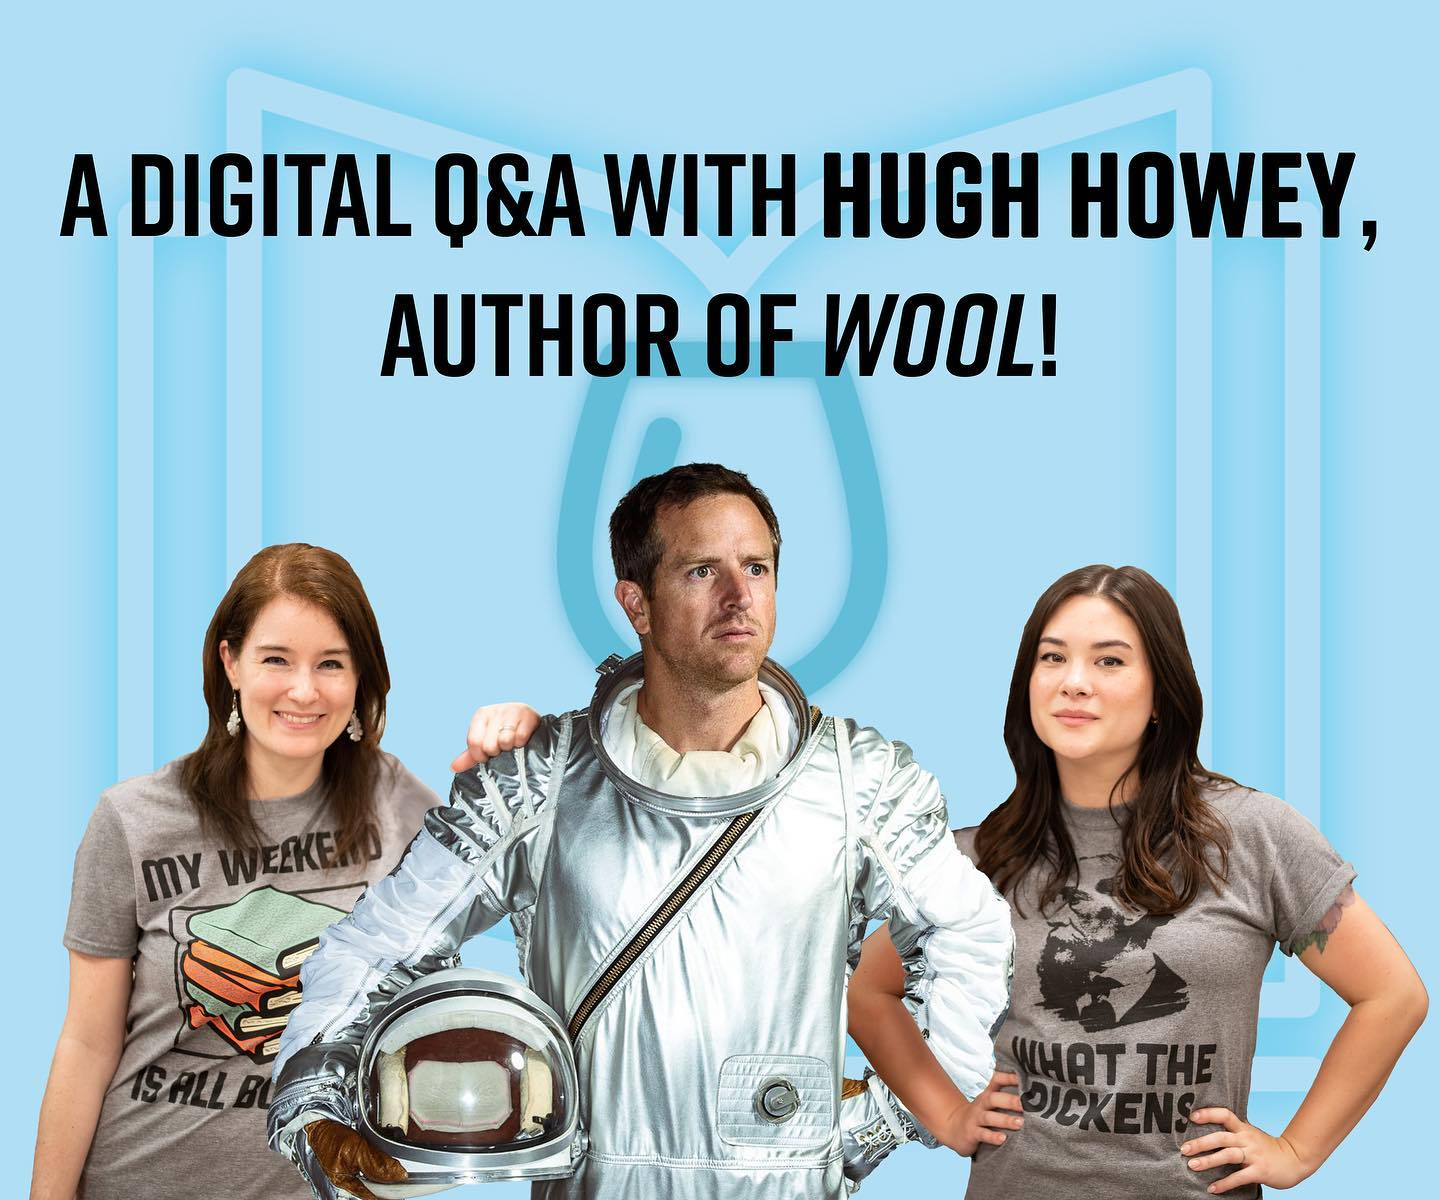 Hugh Howey Answers Your Questions Geekward The four members of the video comedy sketch series so true, y'all are talia lin, who plays diana, adam schwartz, who plays kevin (he is also the managing director and producer for the series), matt mitchell, who is the core writer and a supporting actor, and luke porter, who handles prop design. geekward